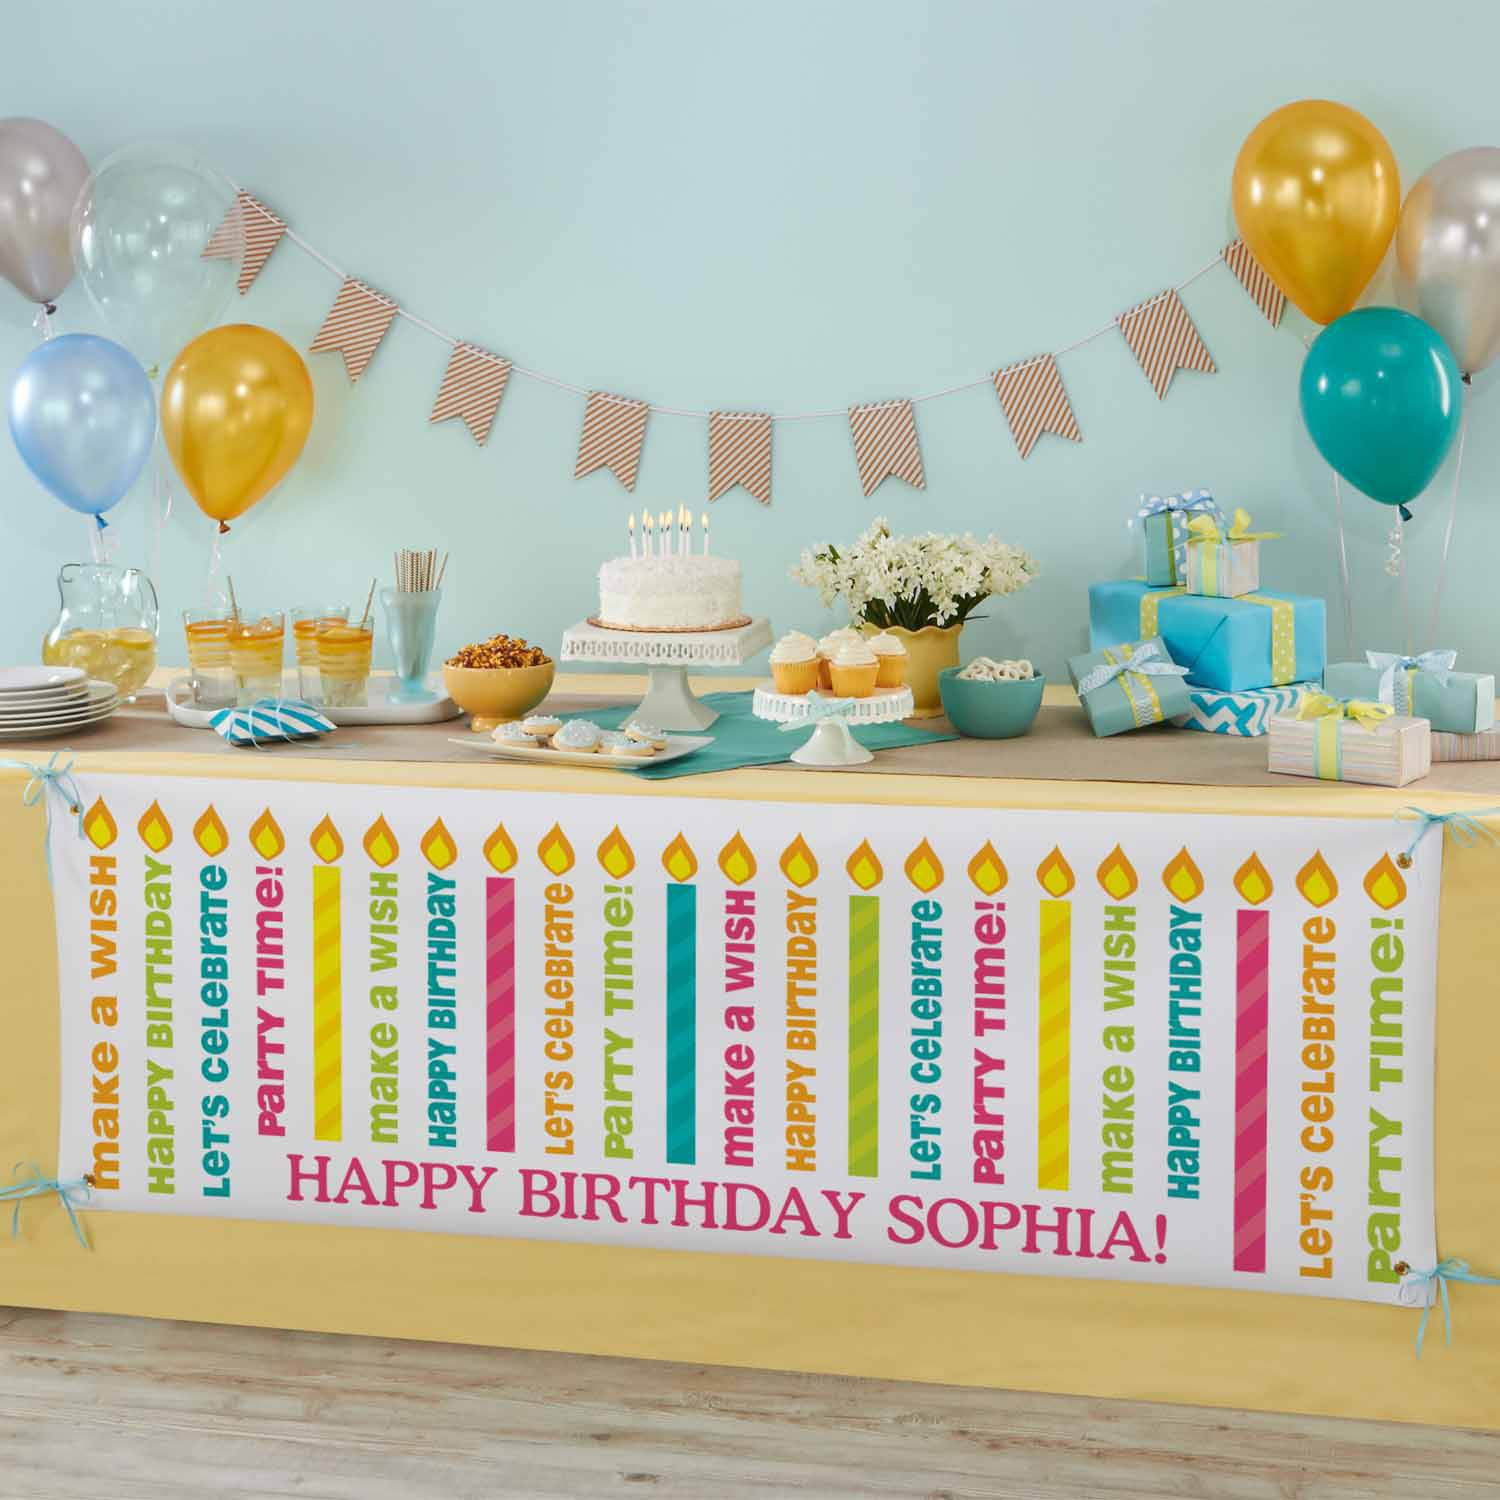 Personalized Light The Candles Birthday Banner - Walmart.com